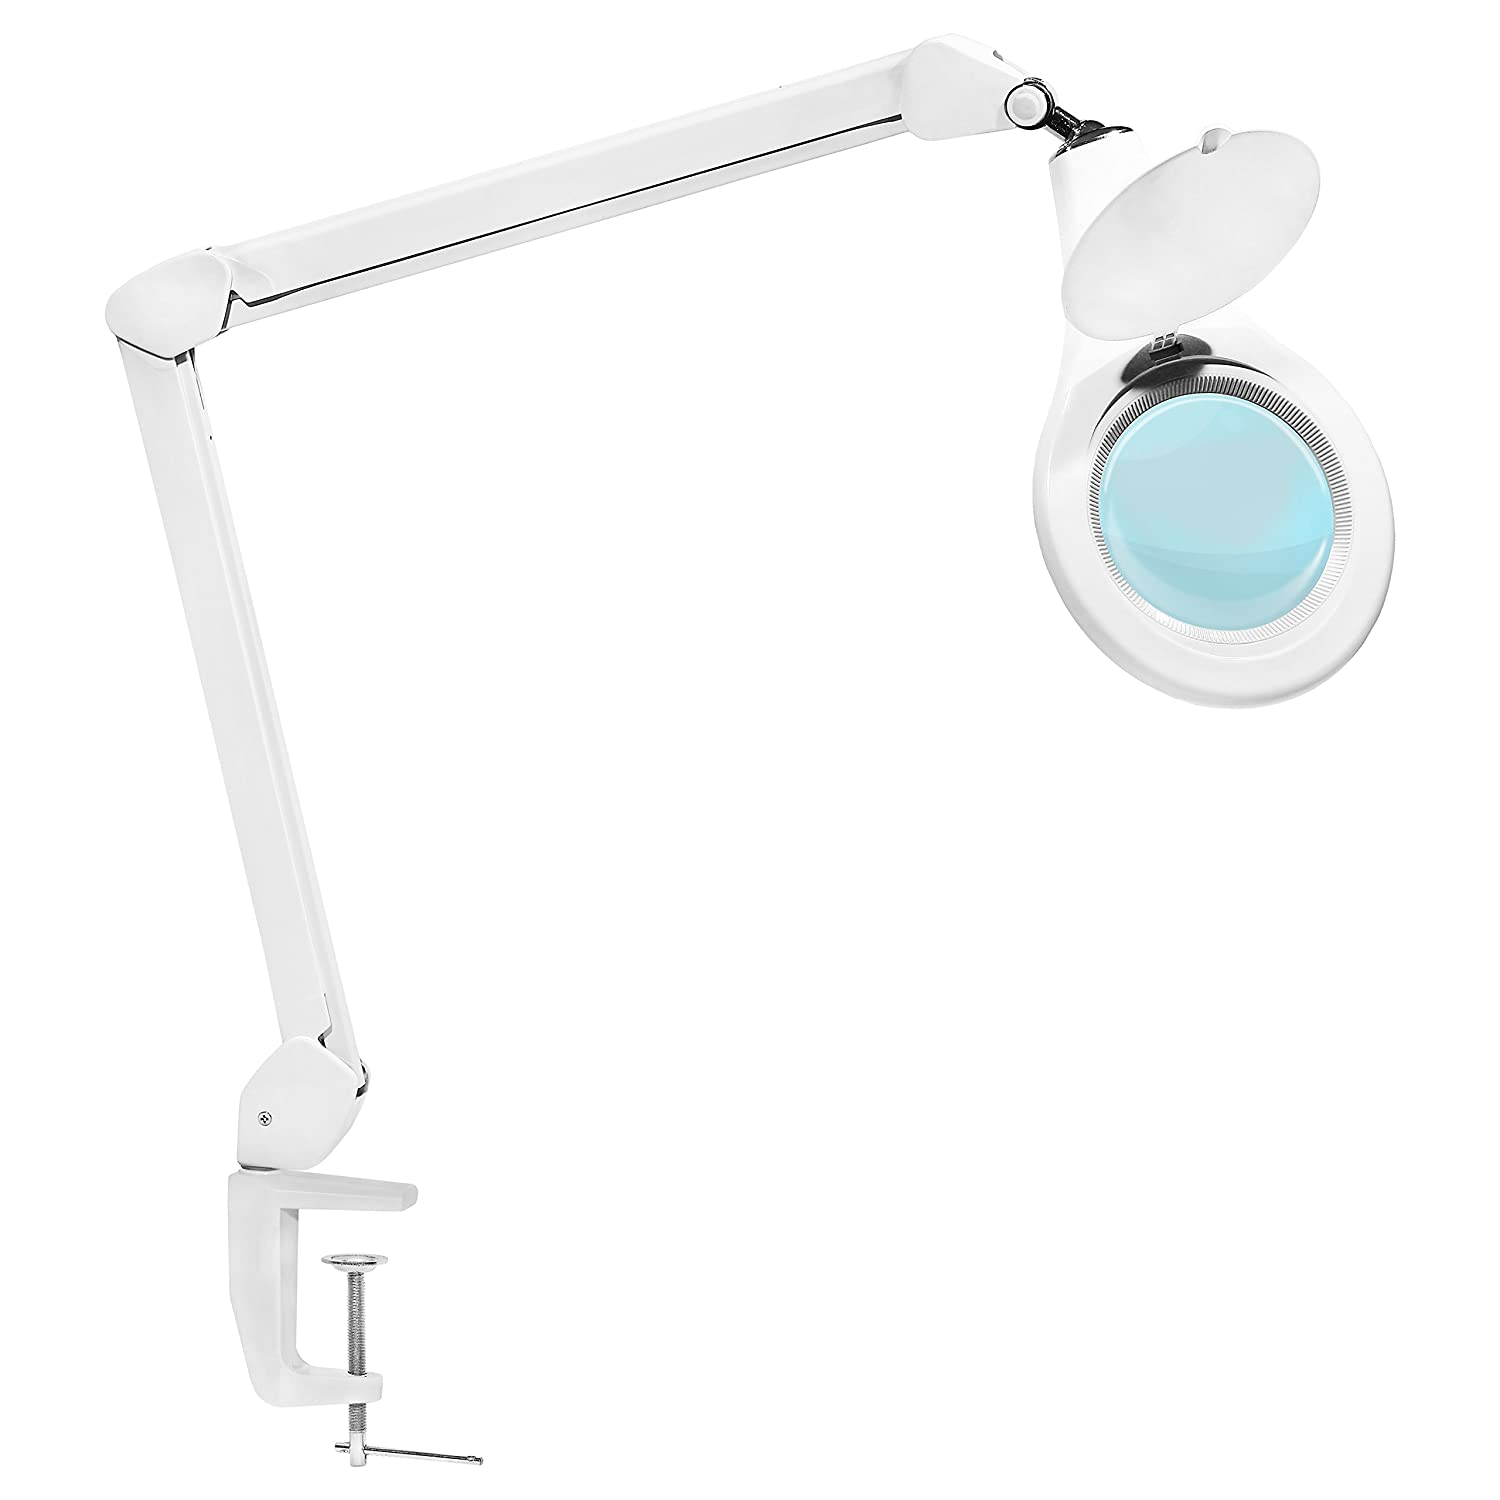 Vision Lighting LED Magnifying Lamp with Clamp - Ultra Bright Task Magnifier 5 Diopter Glass Lens with 2.25x Magnification Adjustable Arms for Hobby Craft Esthetician Work - White Circuit-Test FCM-820LED